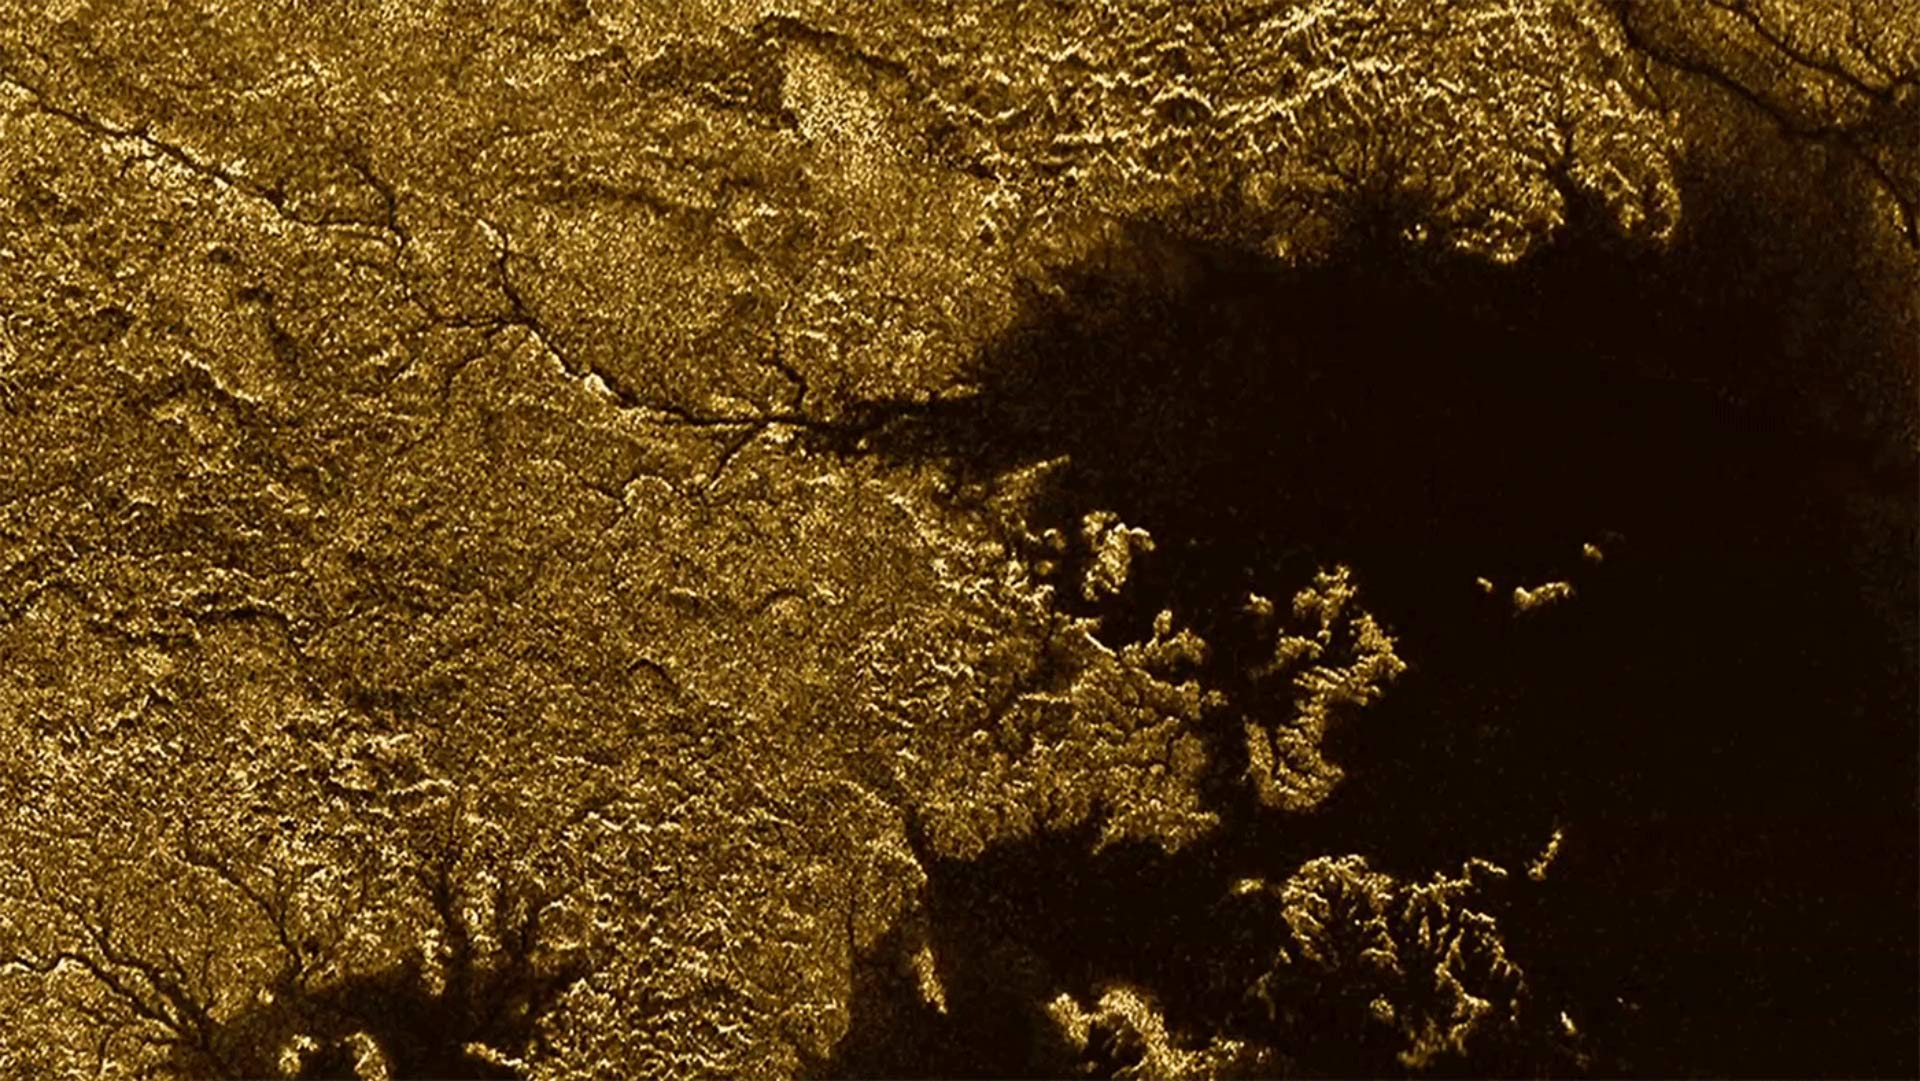 Cassini strikes again - NASA's Saturn probe spacecraft discovers flooded canyons on Titan!